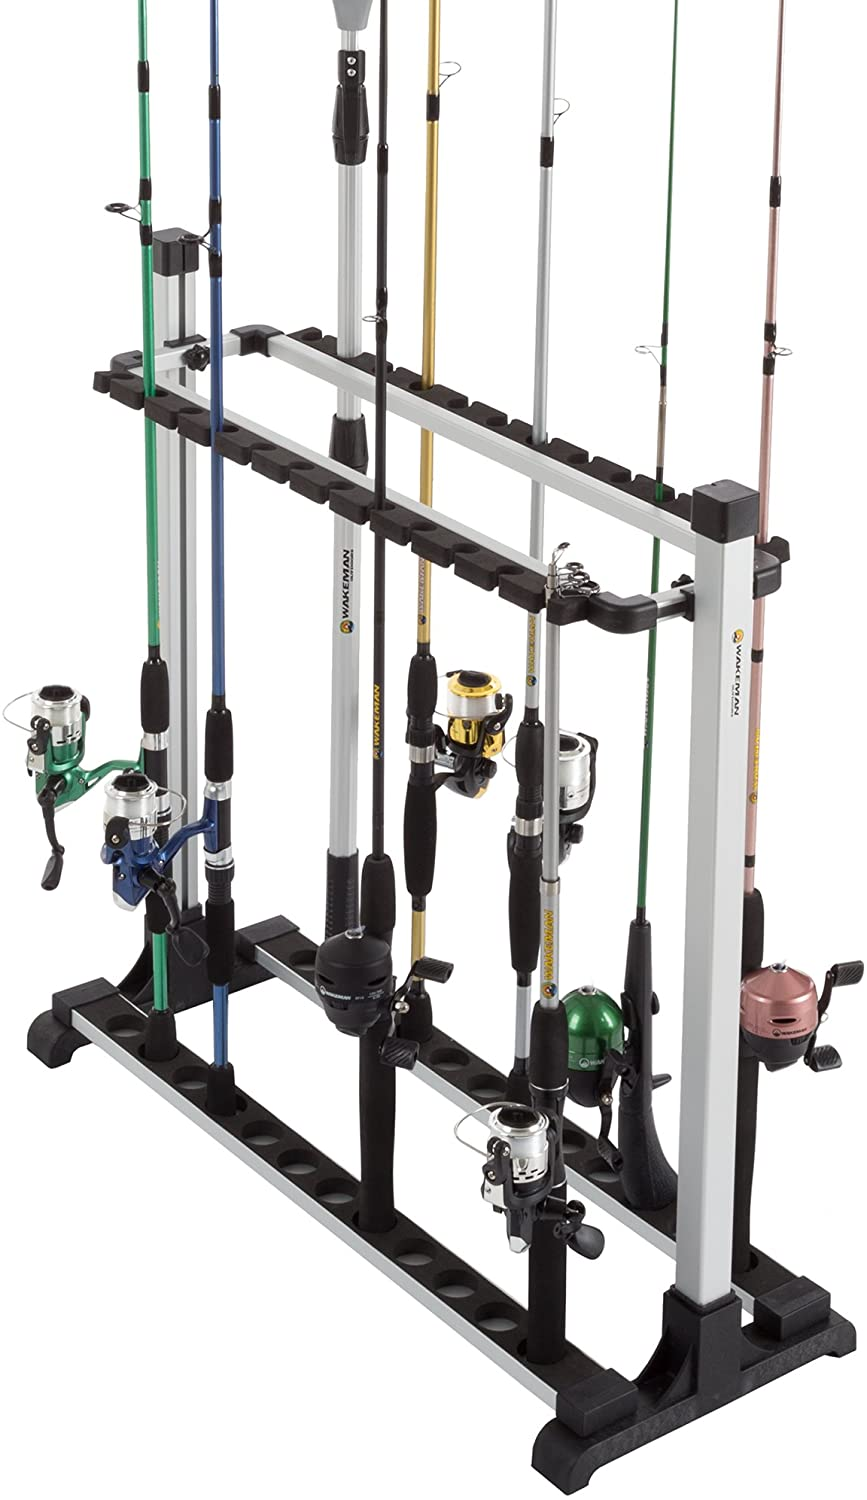 Wakeman Outdoors Fishing Rod Rack- Aluminum Freestanding Floor Storage, Organizer Stand for Home or Garage, Fits 24 Freshwater or Saltwater Rods, Black, Model: 80-FSH5020